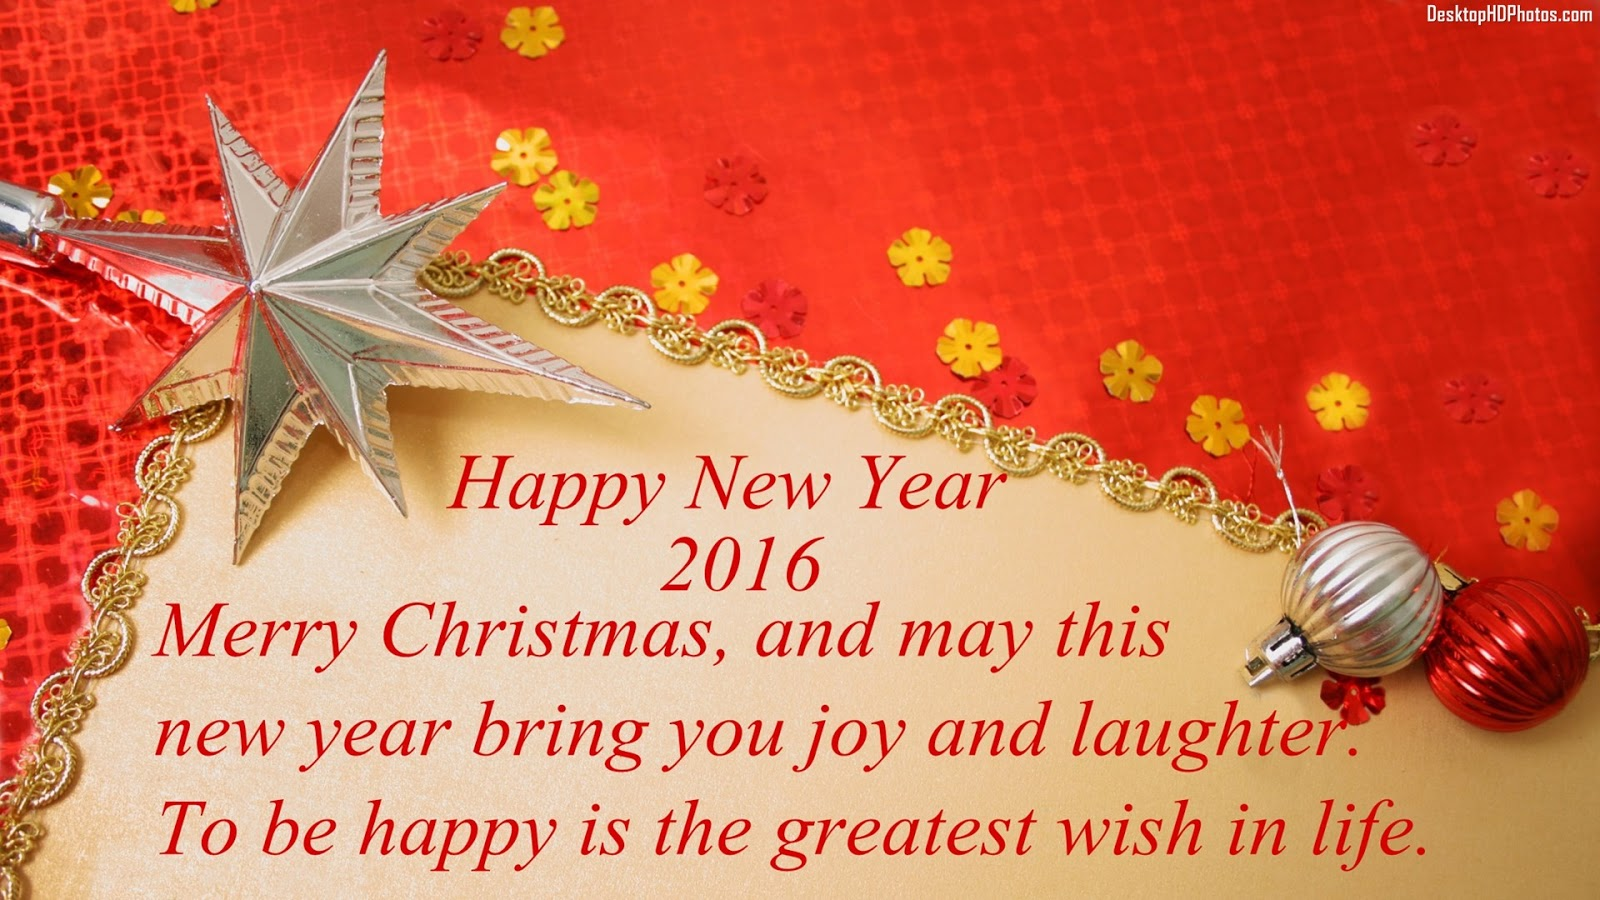 Merry Christmas And Happy New Year Remix 2 With 2016 - Ucapan Merry Christmas 2018 , HD Wallpaper & Backgrounds